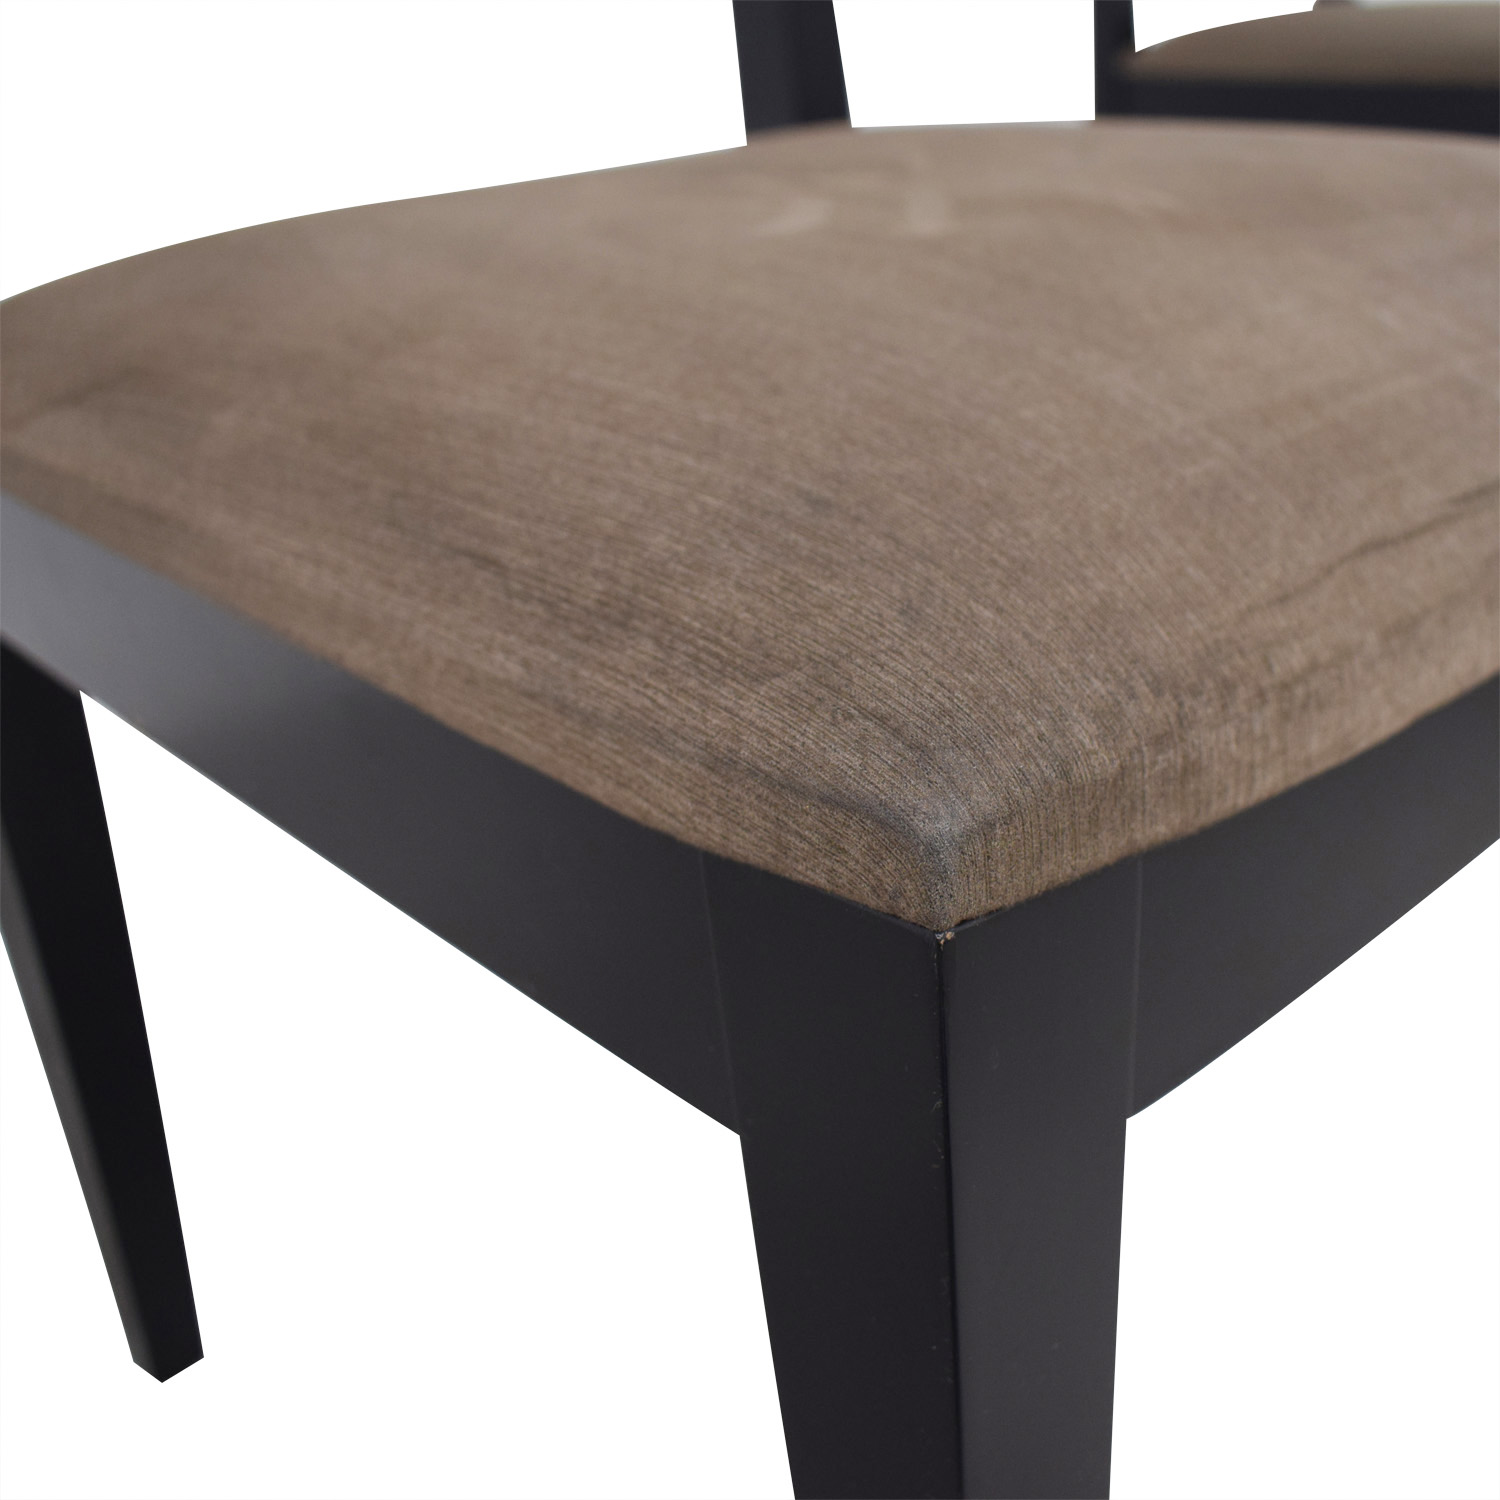 Crate & Barrel Crate & Barrel Halo Table With Basque Upholstered Chairs on sale